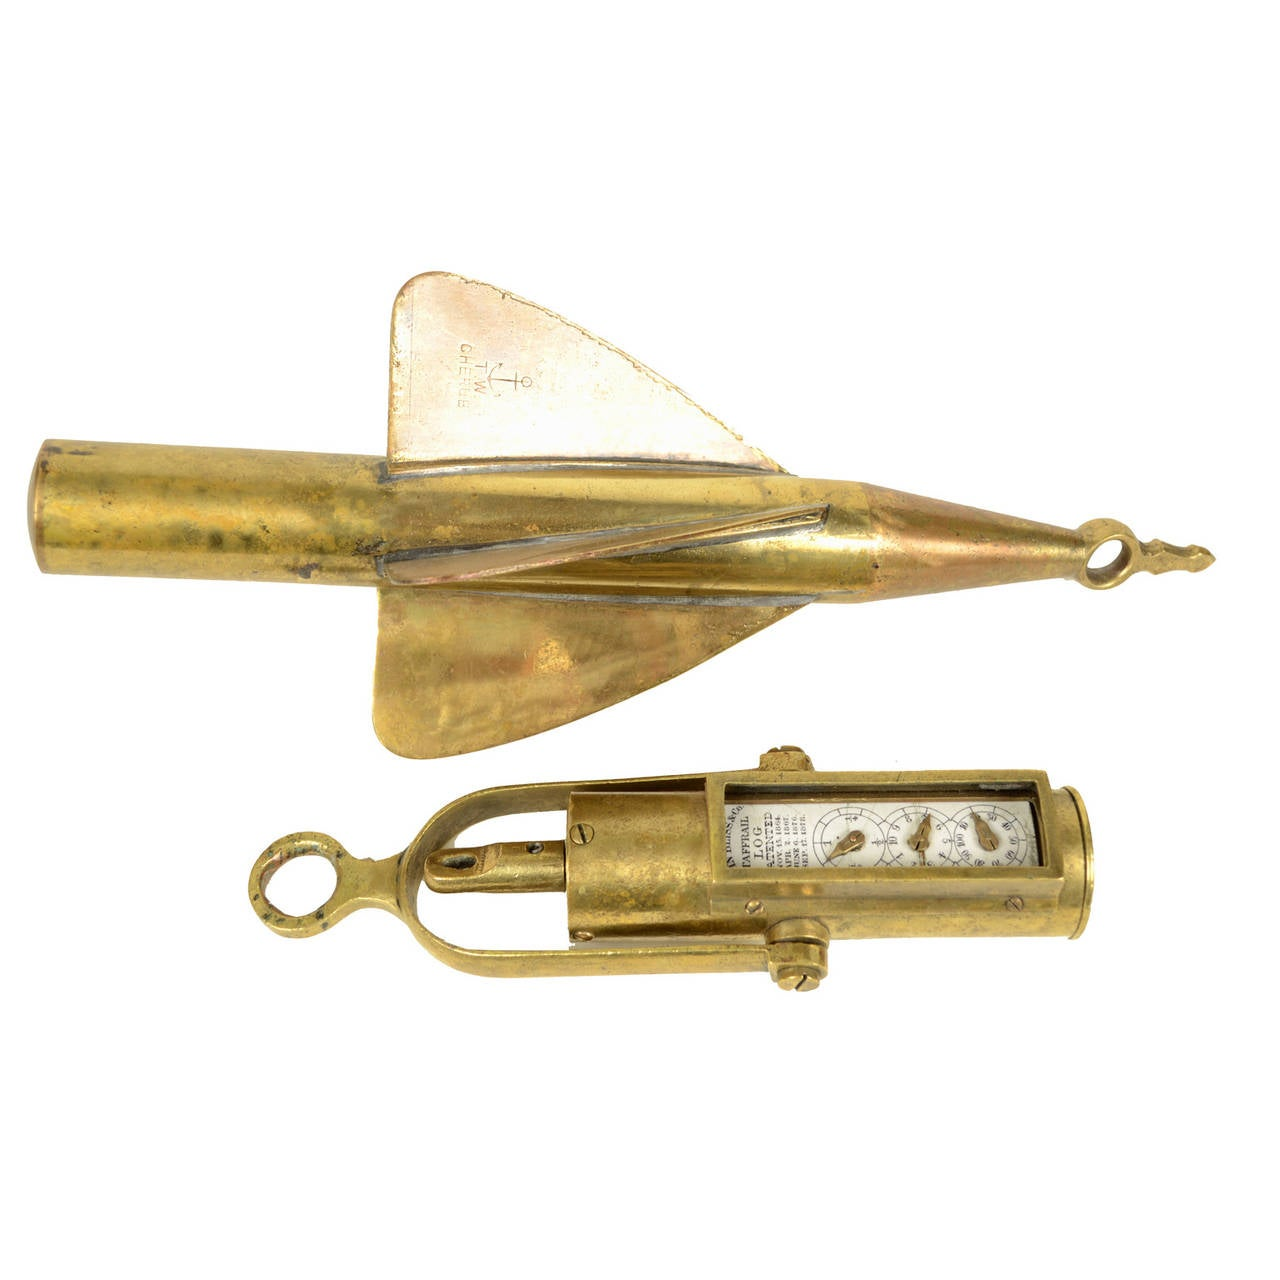 Traffail ship Log, brass, signed John Bliss & Co. Patented Nov. 15 1864, made in USA in 1880 circa, complete with a small propeller. It is an instrument used to measure the speed and the distance traveled by a ship using a dial with three scales on